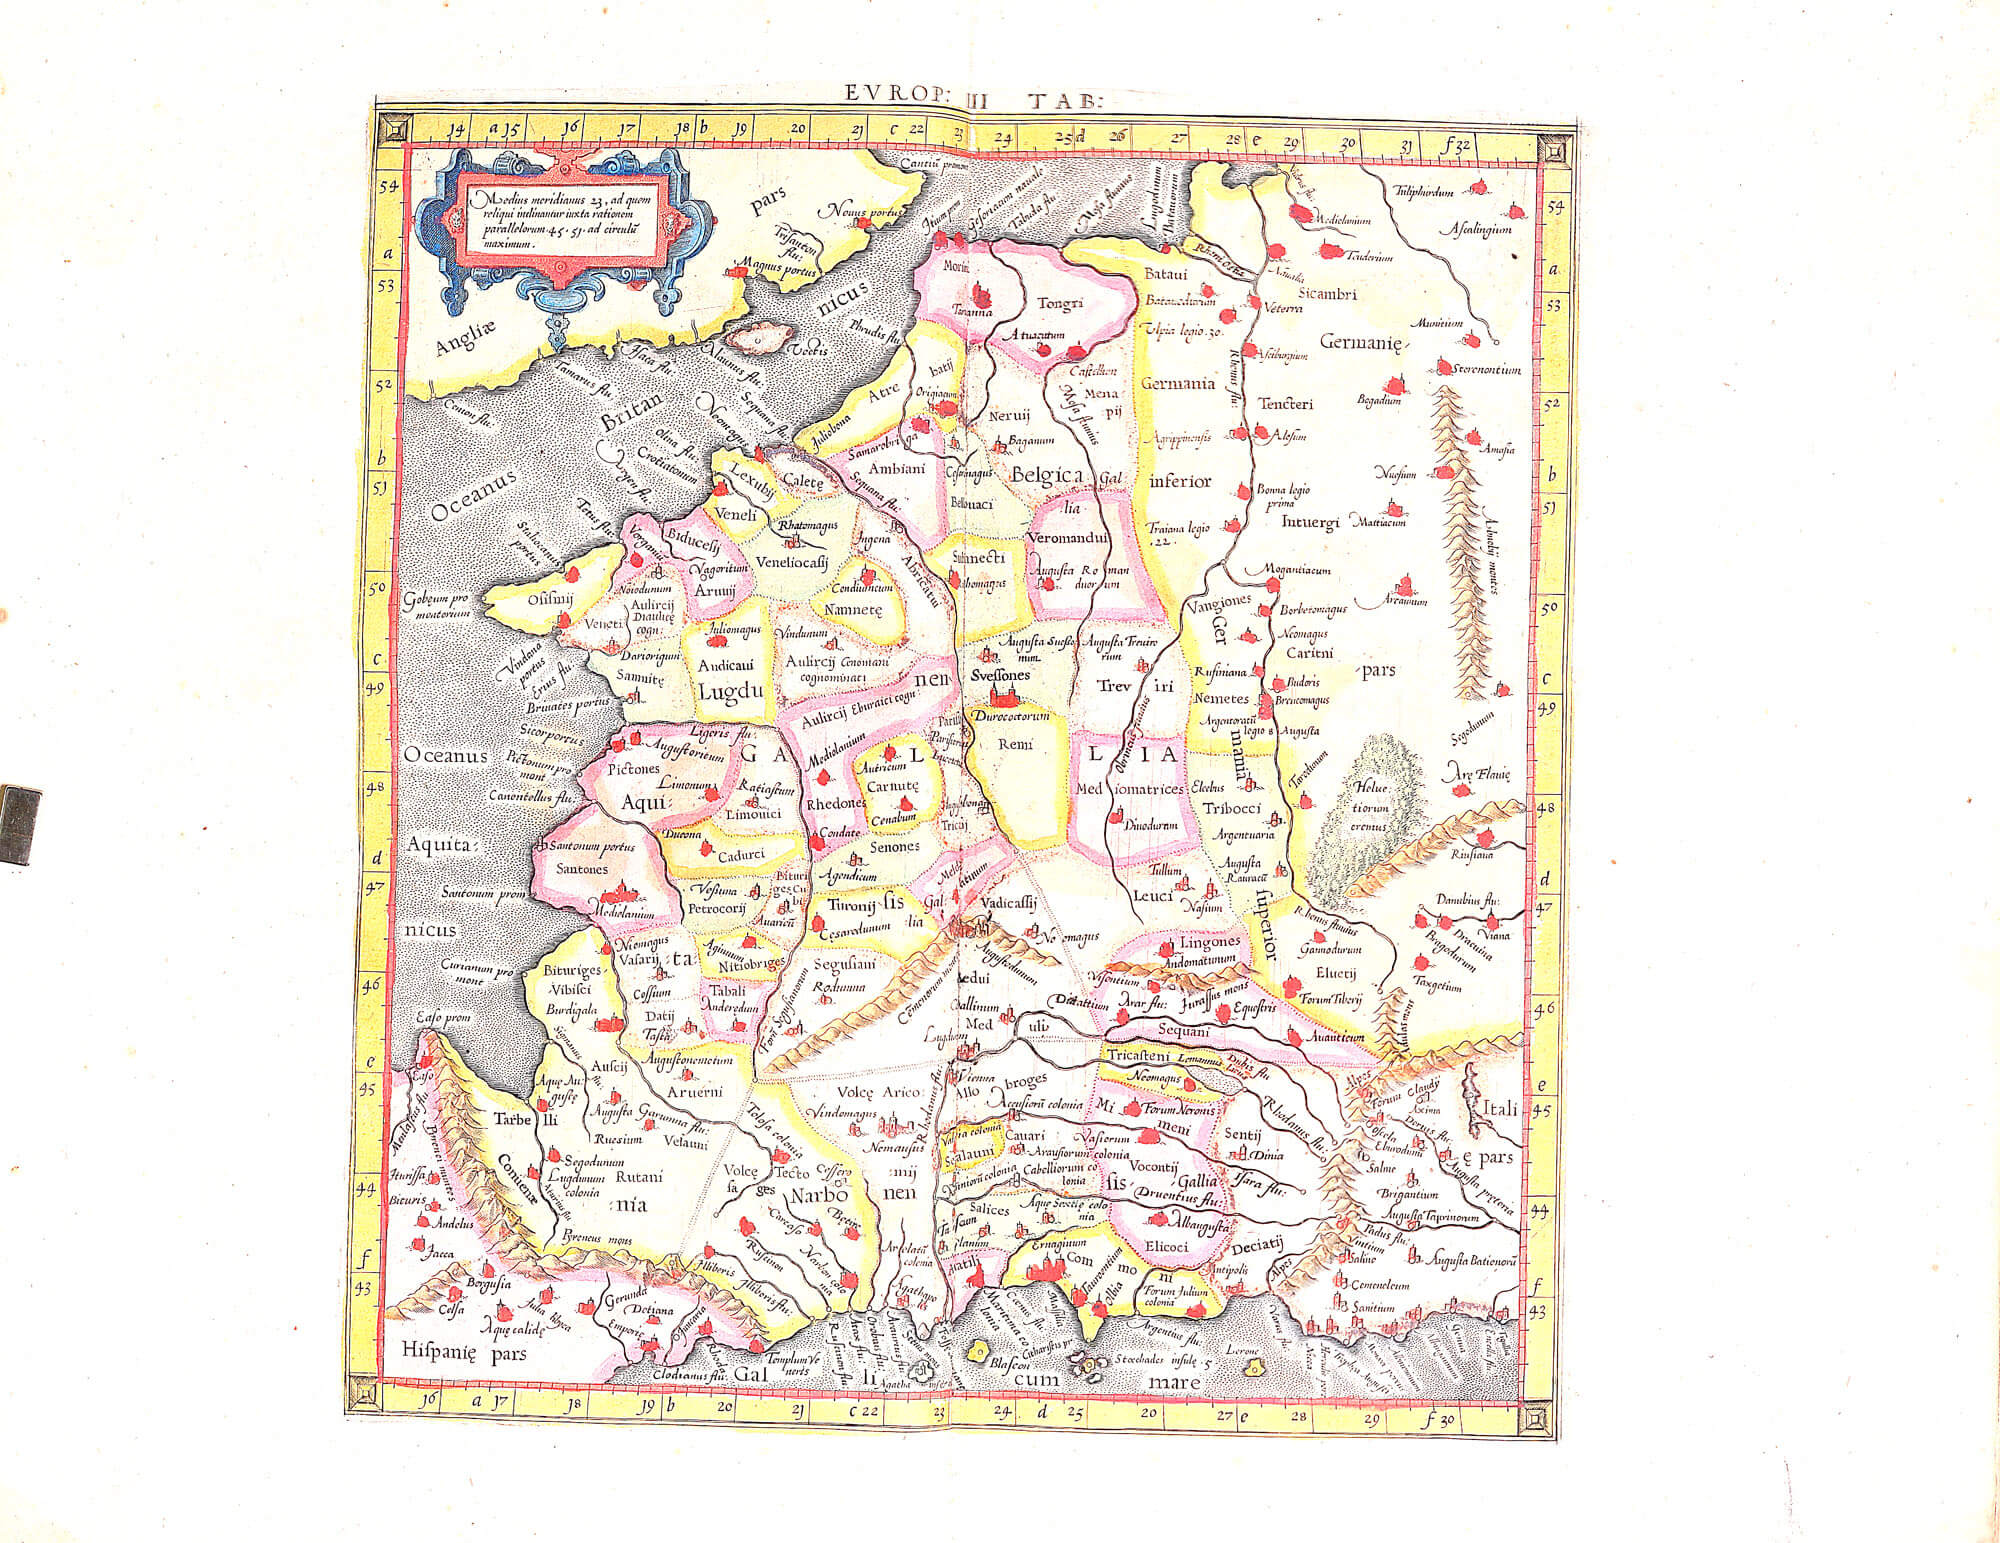 World atlas c ptolomy peter bertius 1618 l brown collection dd aa 08 04 france gumiabroncs Choice Image